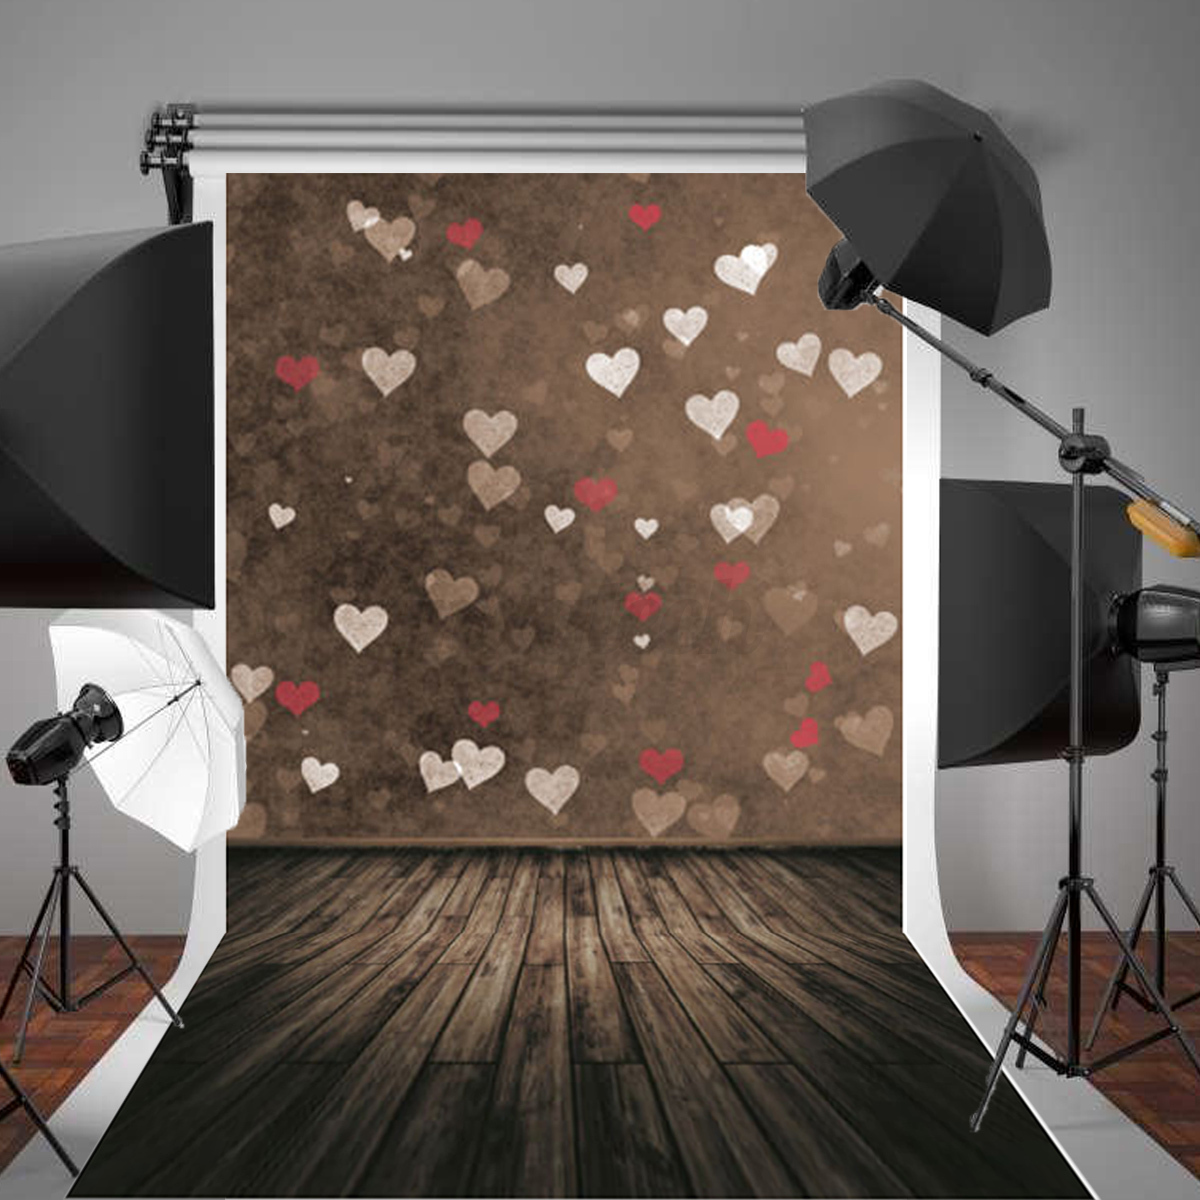 New box truck heartwood manufacturing - Image Is Loading 5x7ft Children Kids Love Heart Wood Photography Background